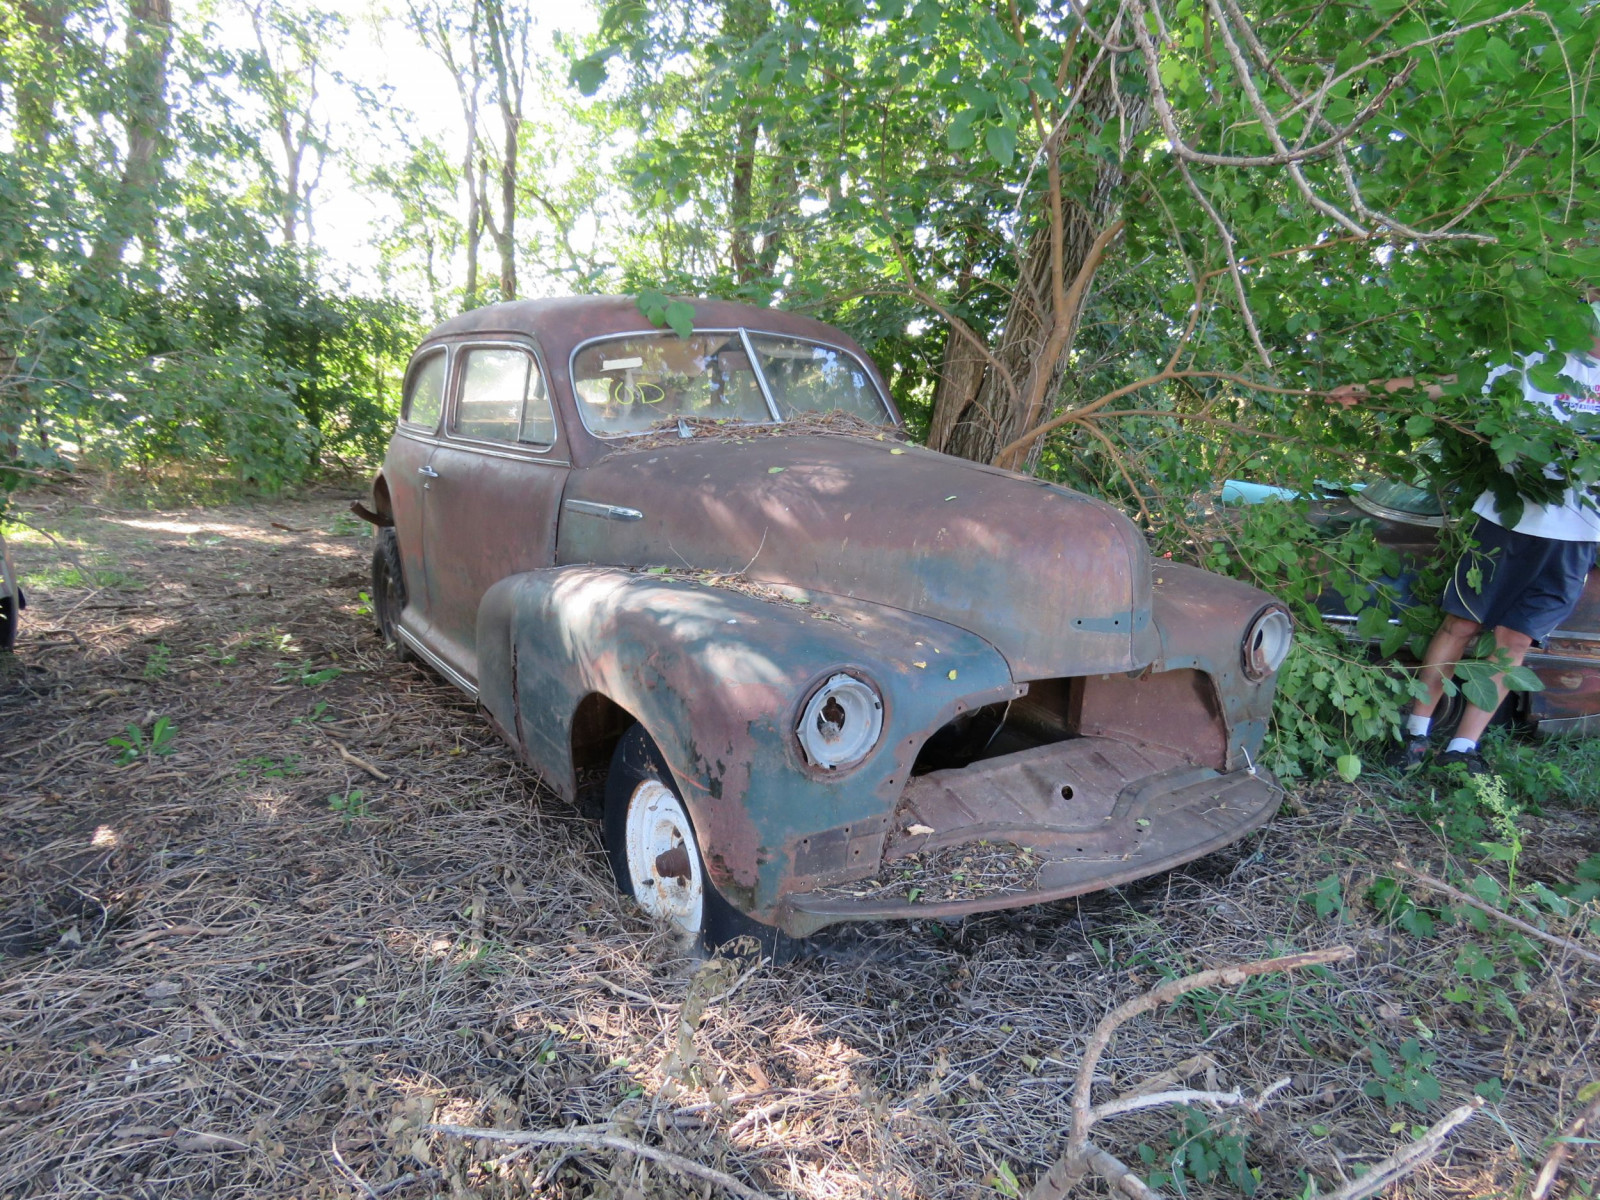 1947 Chevrolet 2dr Sedan for project or parts - Image 1